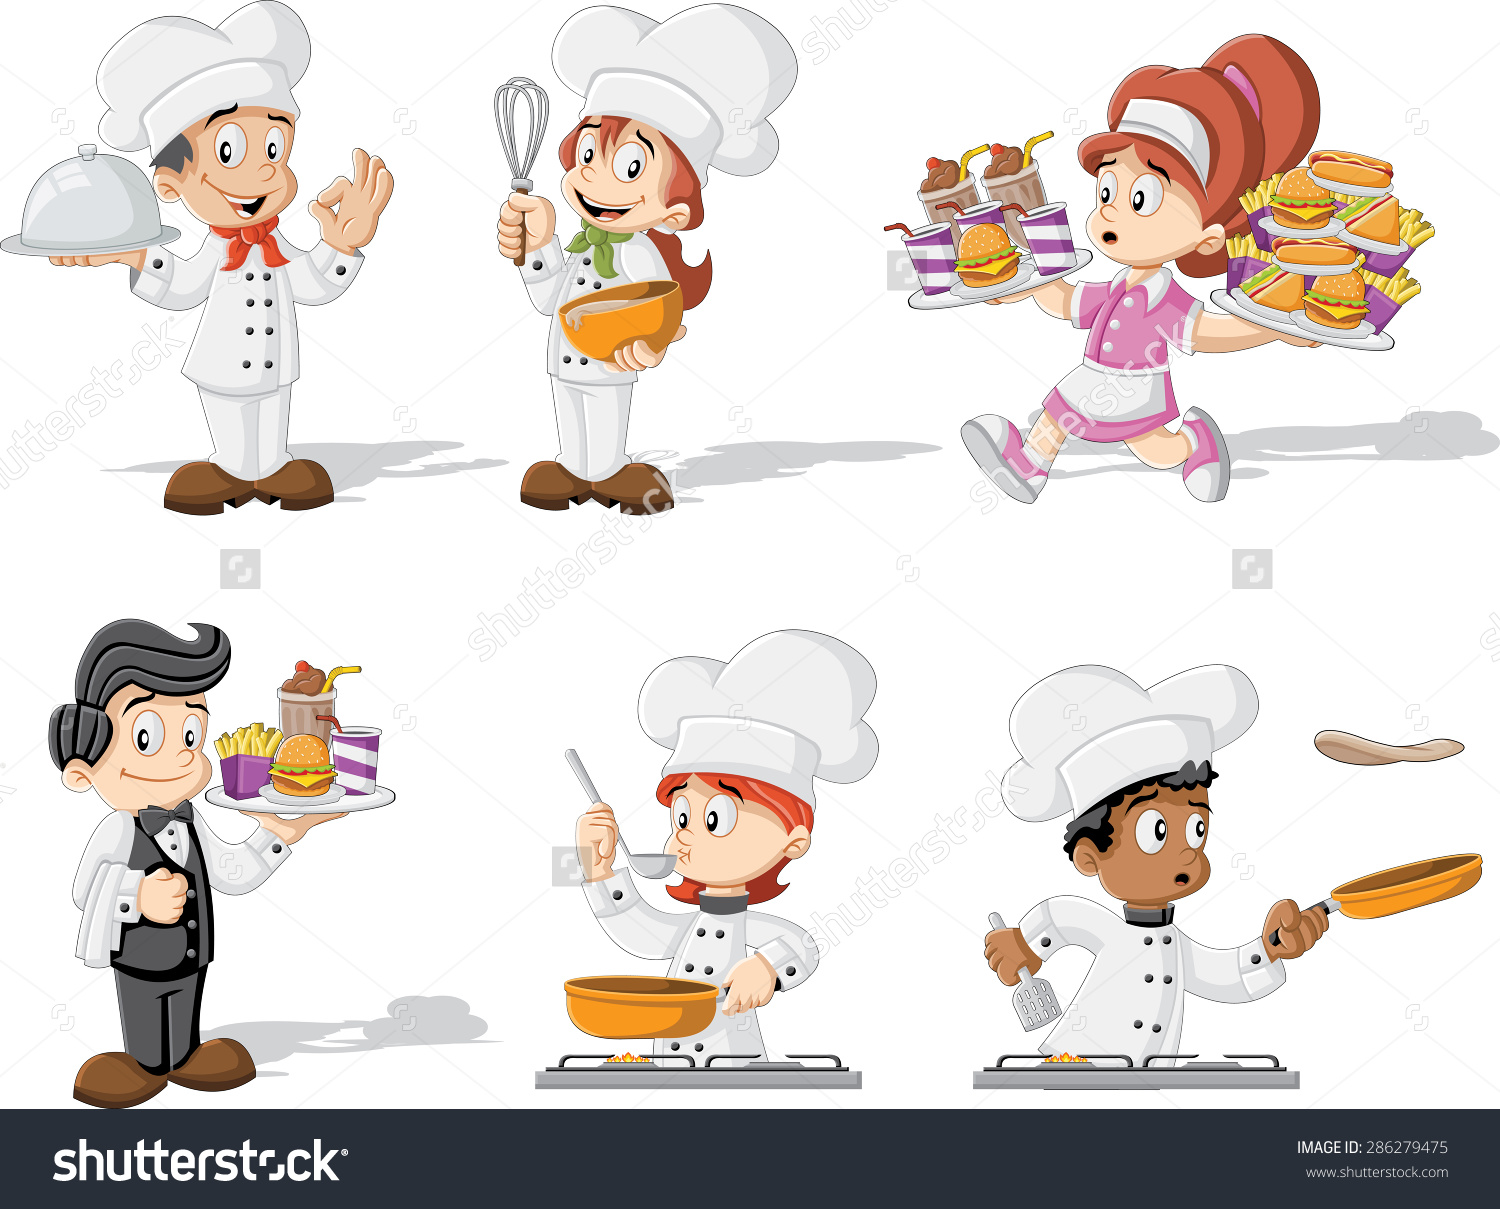 waitress holding food tray clipart - Clipground Empty Food Tray Clipart